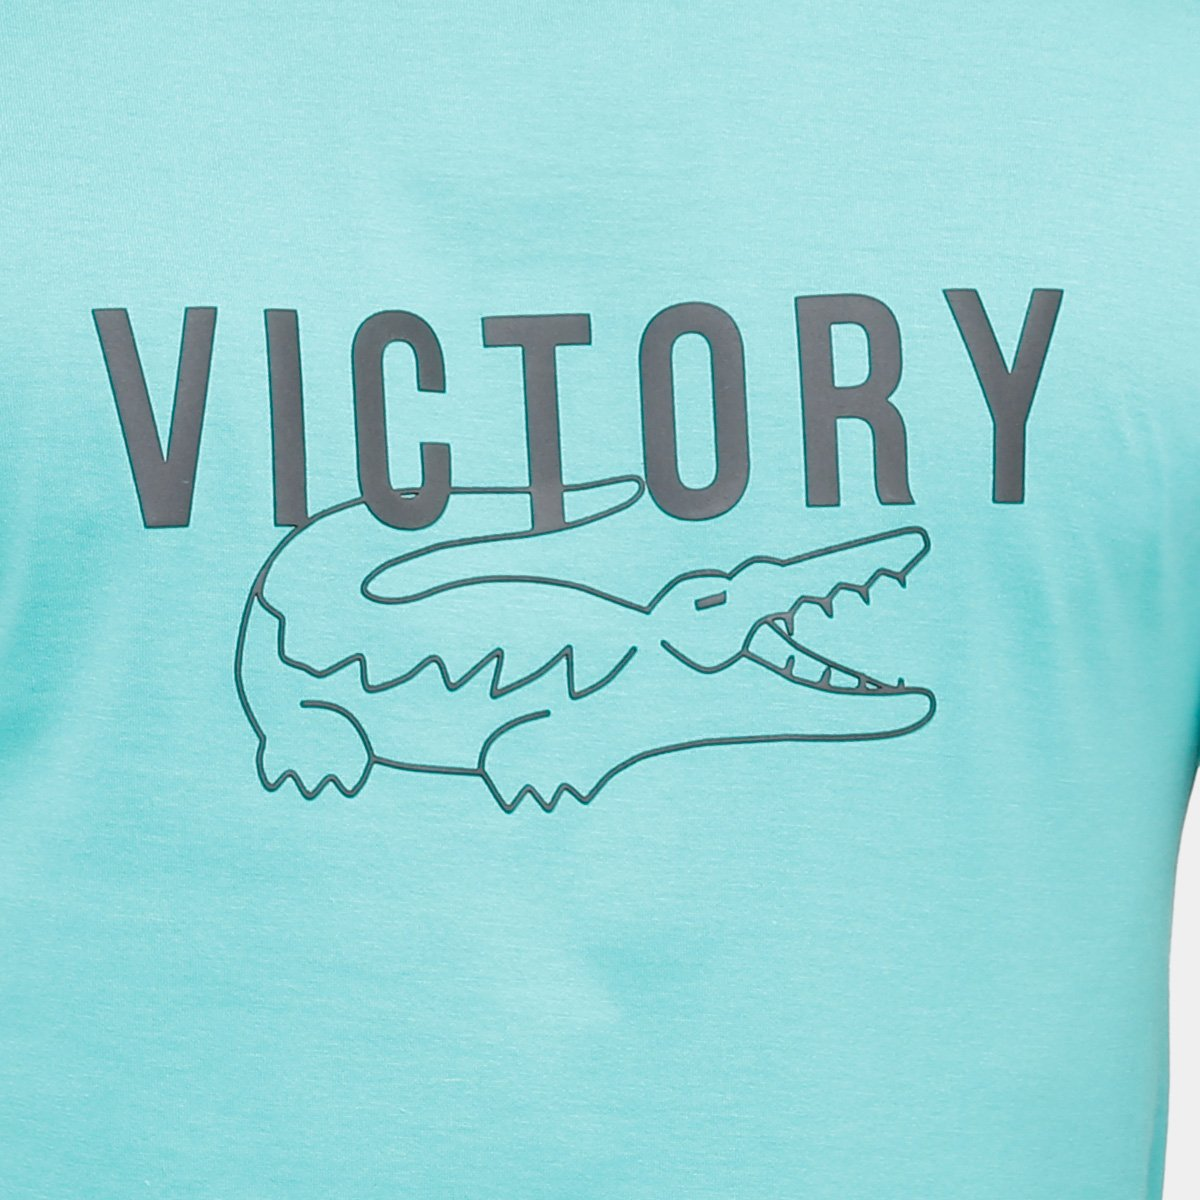 739bd2edd518d Camiseta Lacoste Victory Masculina - Compre Agora   Netshoes